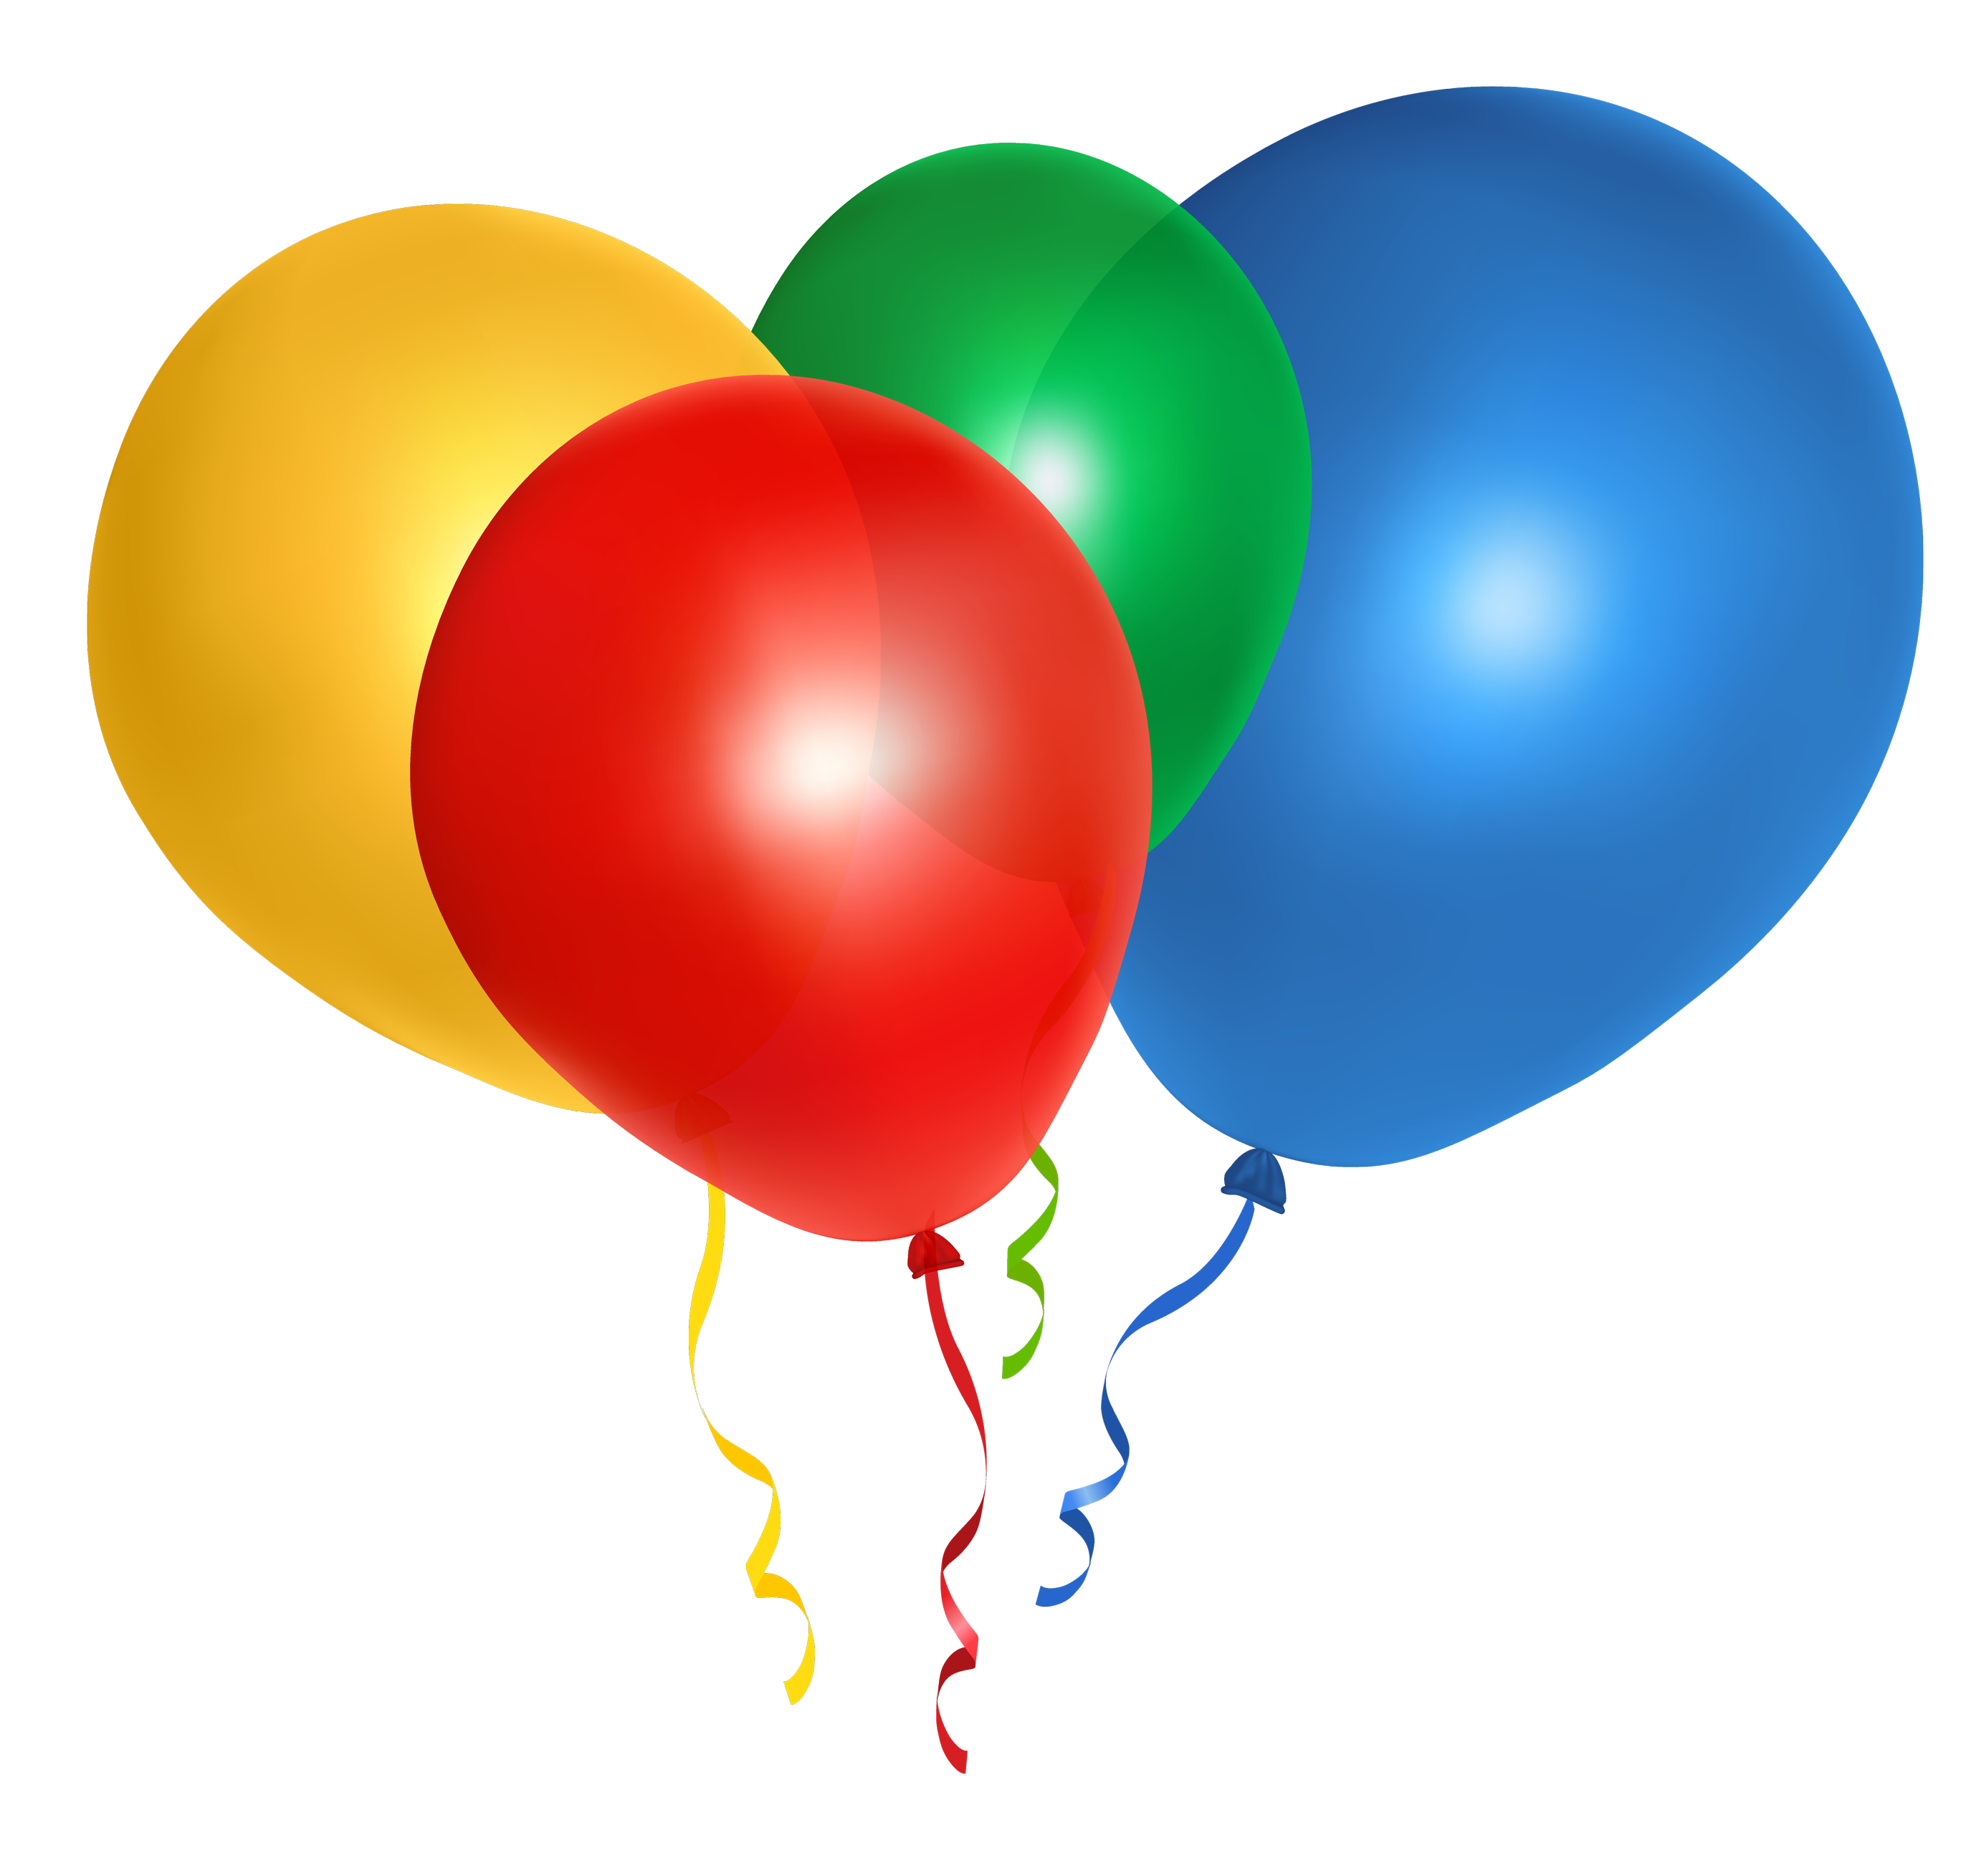 Png File Name: Balloons Png Hd Dimension: 2750X2618. Image Type: .png. Posted On: Aug 15Th, 2016. Category: Holidays Tags: Balloons - Balloon, Transparent background PNG HD thumbnail